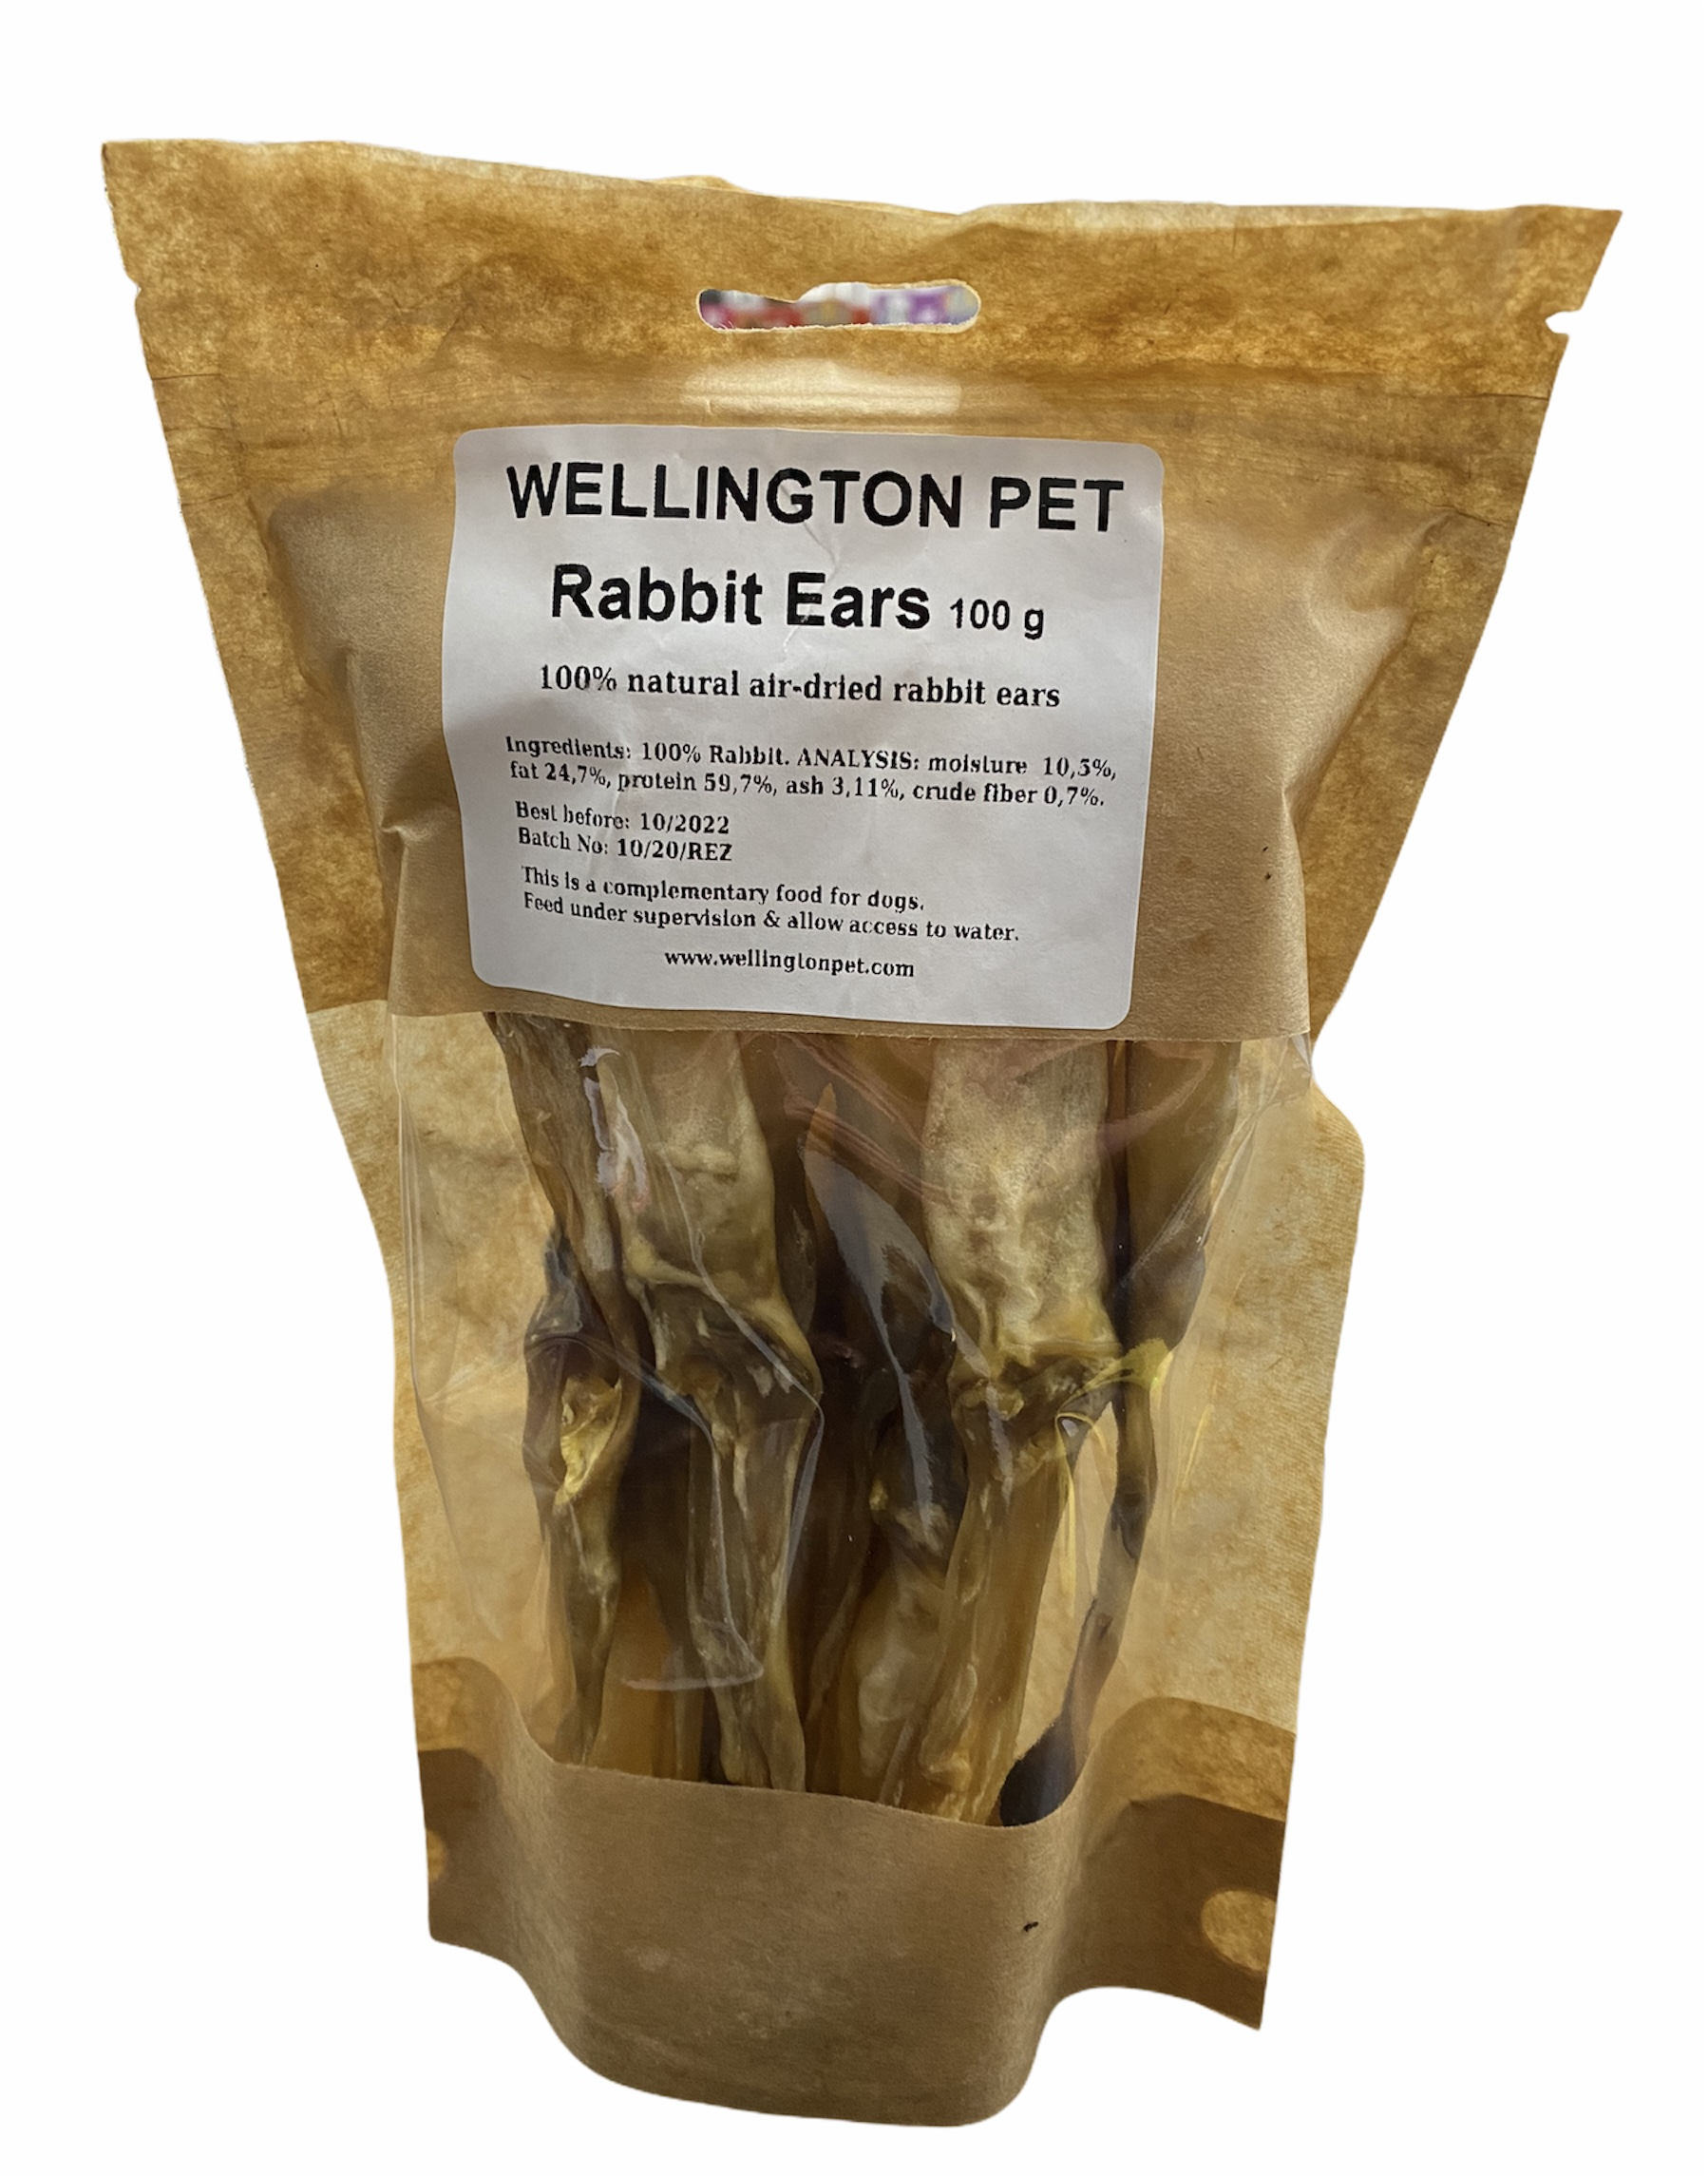 Wellington Rabbit Ears Bag 100g